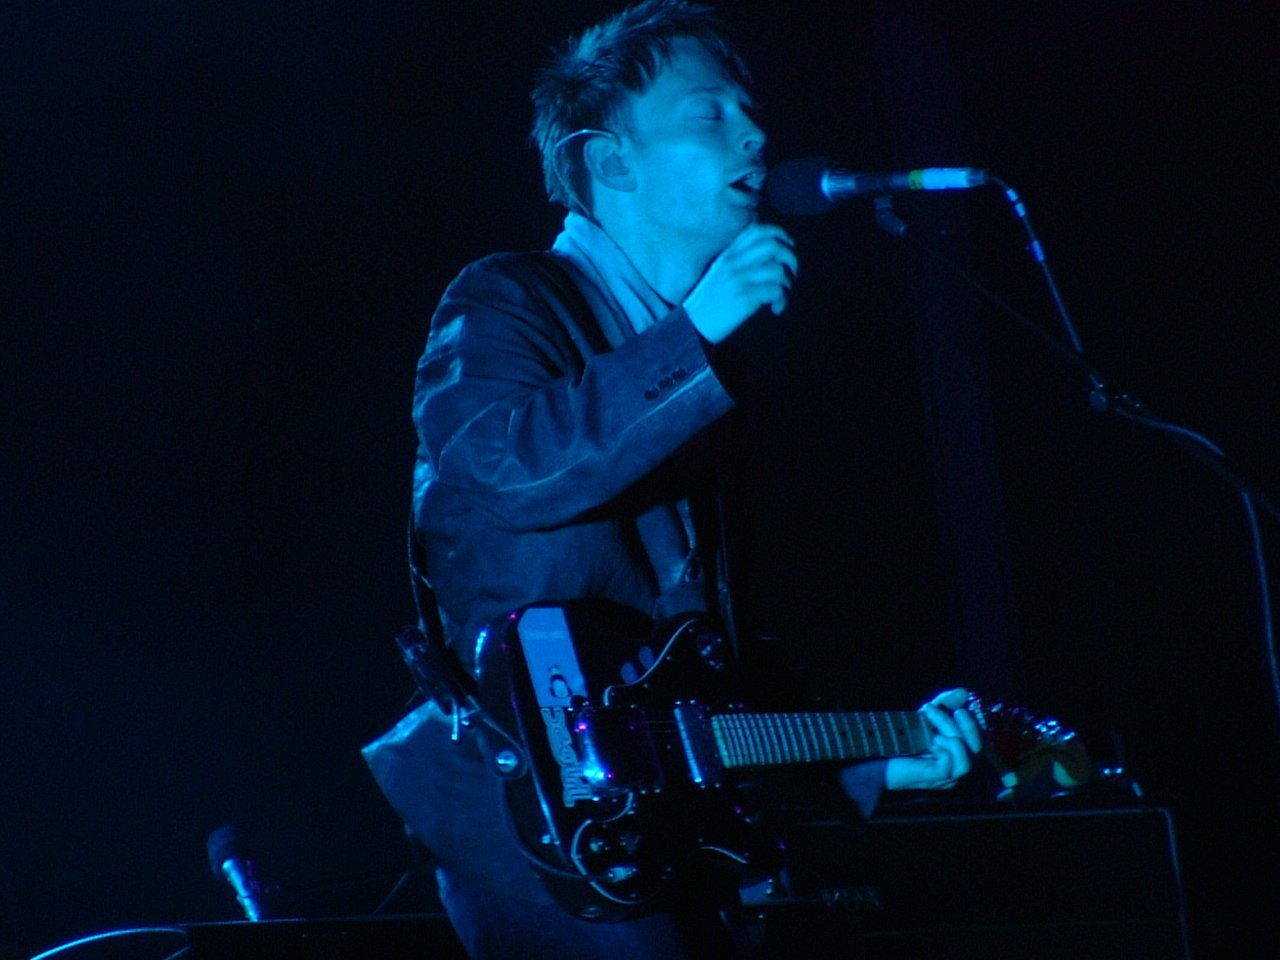 radiohead thom singing Music HD Wallpaper